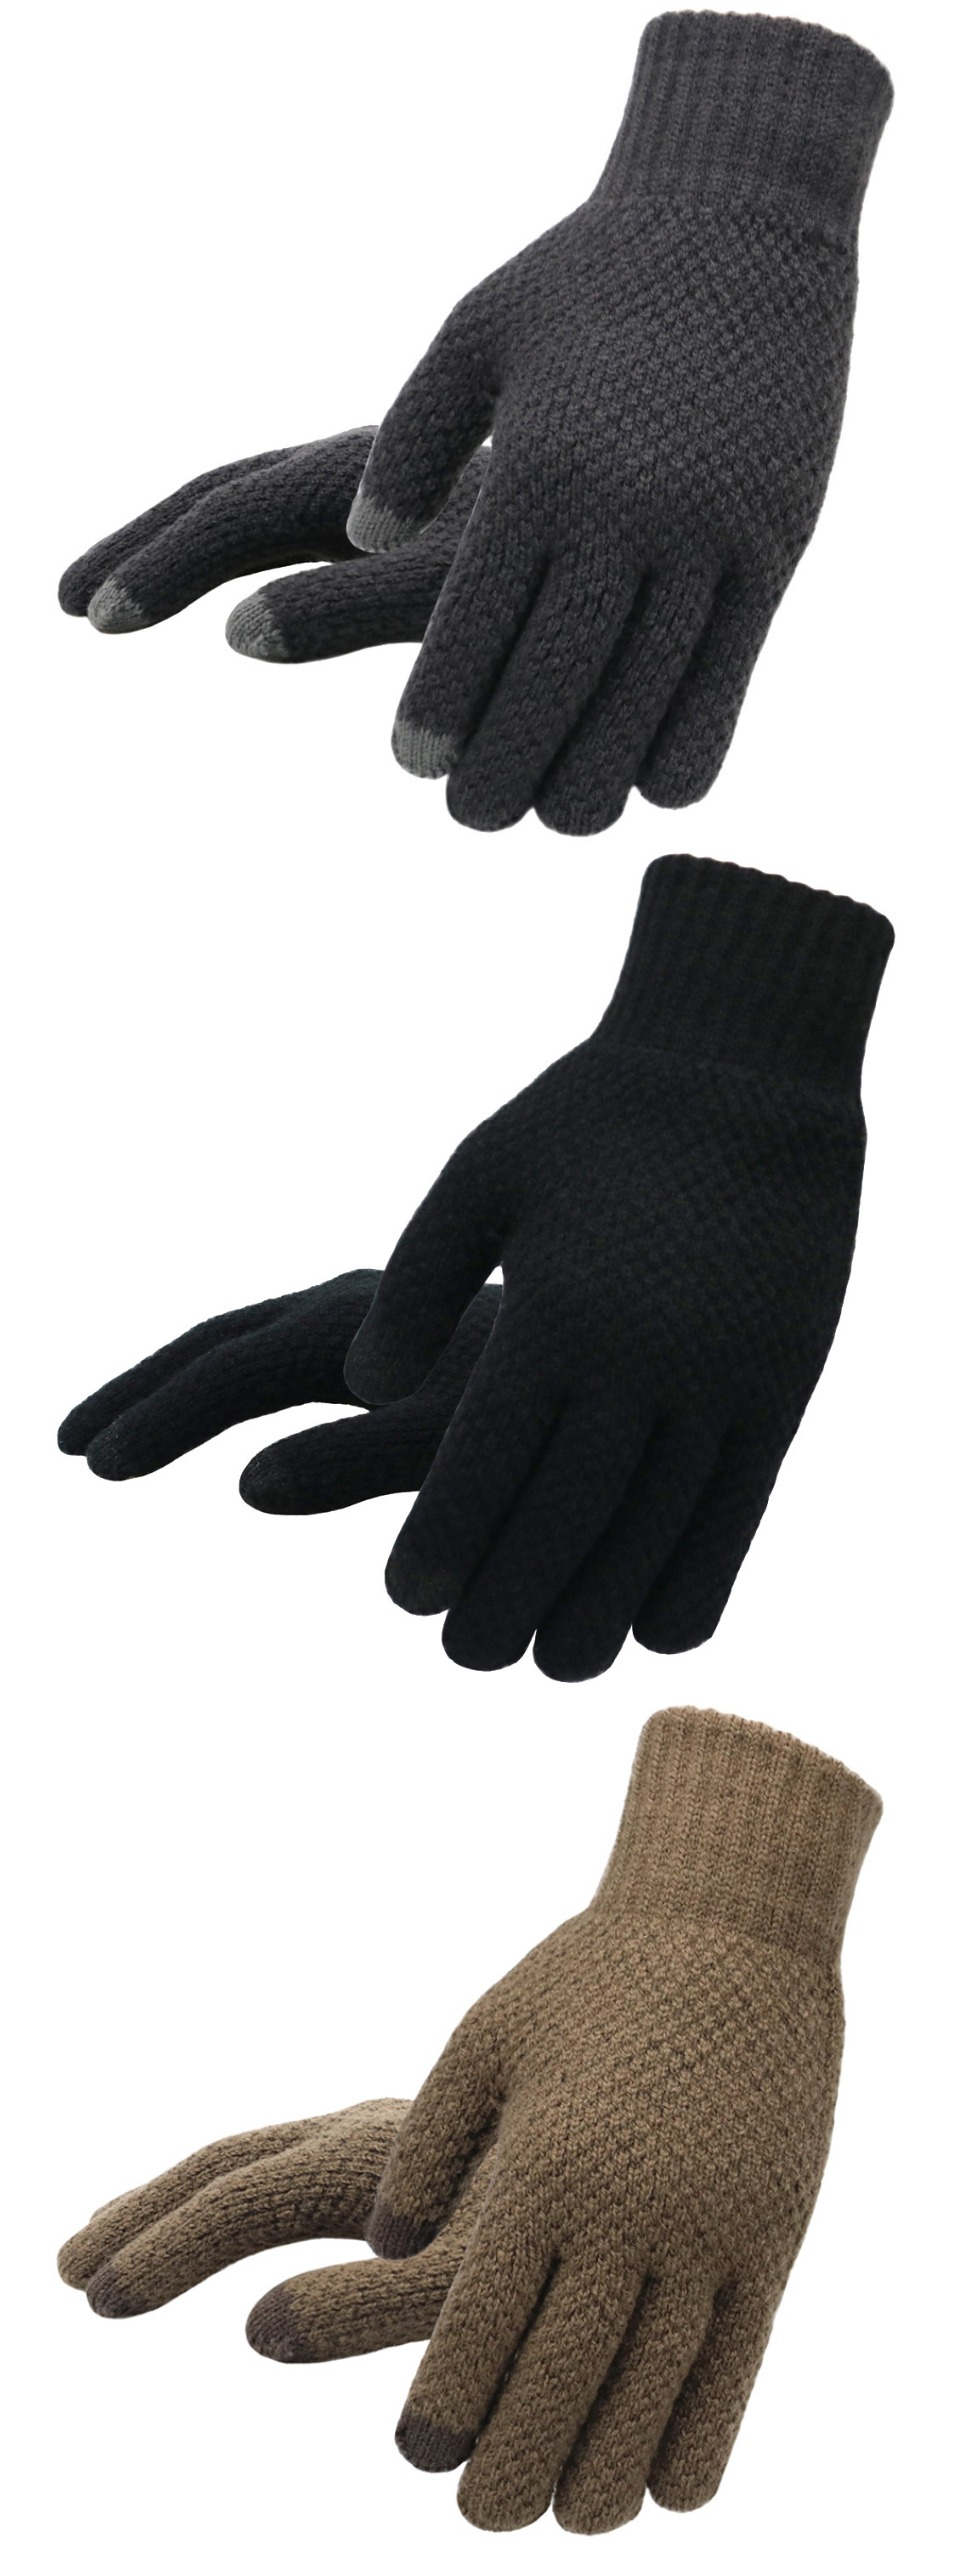 Warm and soft Knitted Touch Screen Gloves for Men Suitable during Winter and Autumn Made of Acrylic and Polyester Material 11